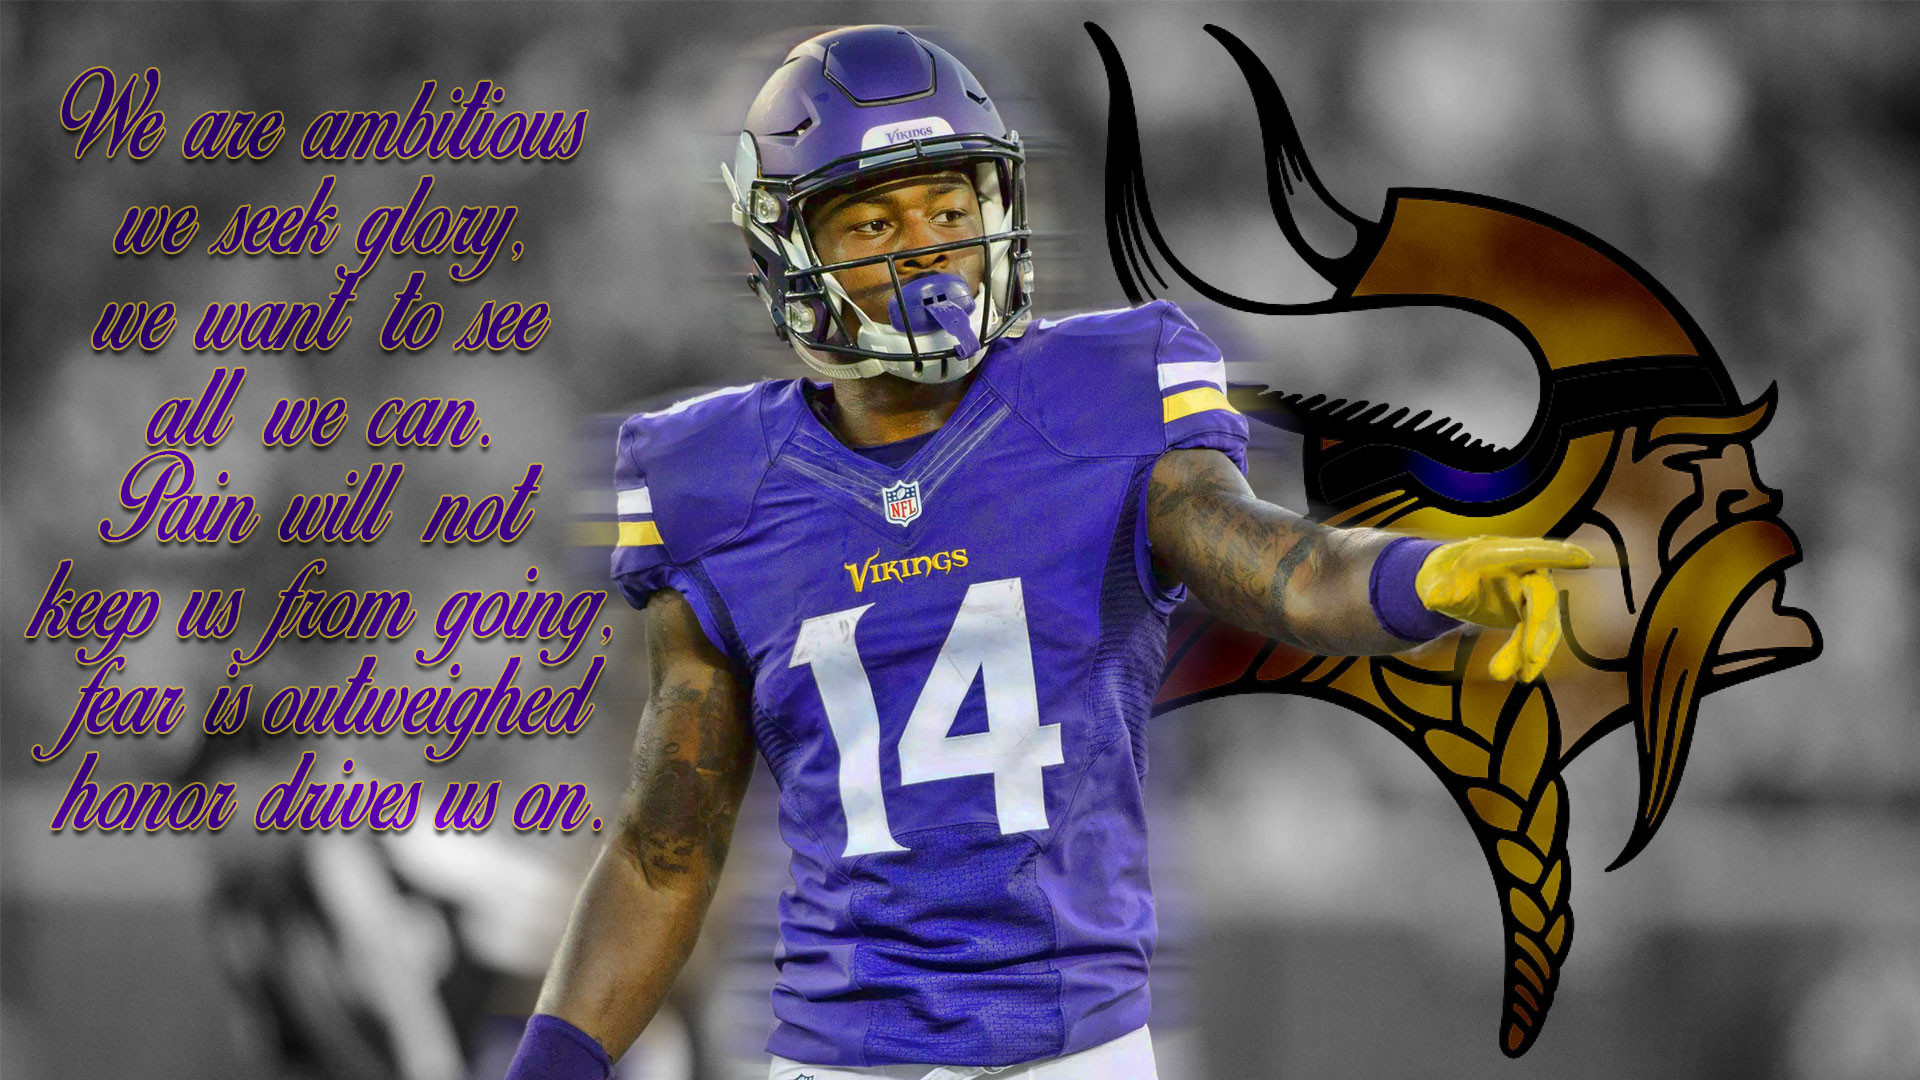 1920x1080 Minnesota Vikings Heavy Metal Tablet wallpaper